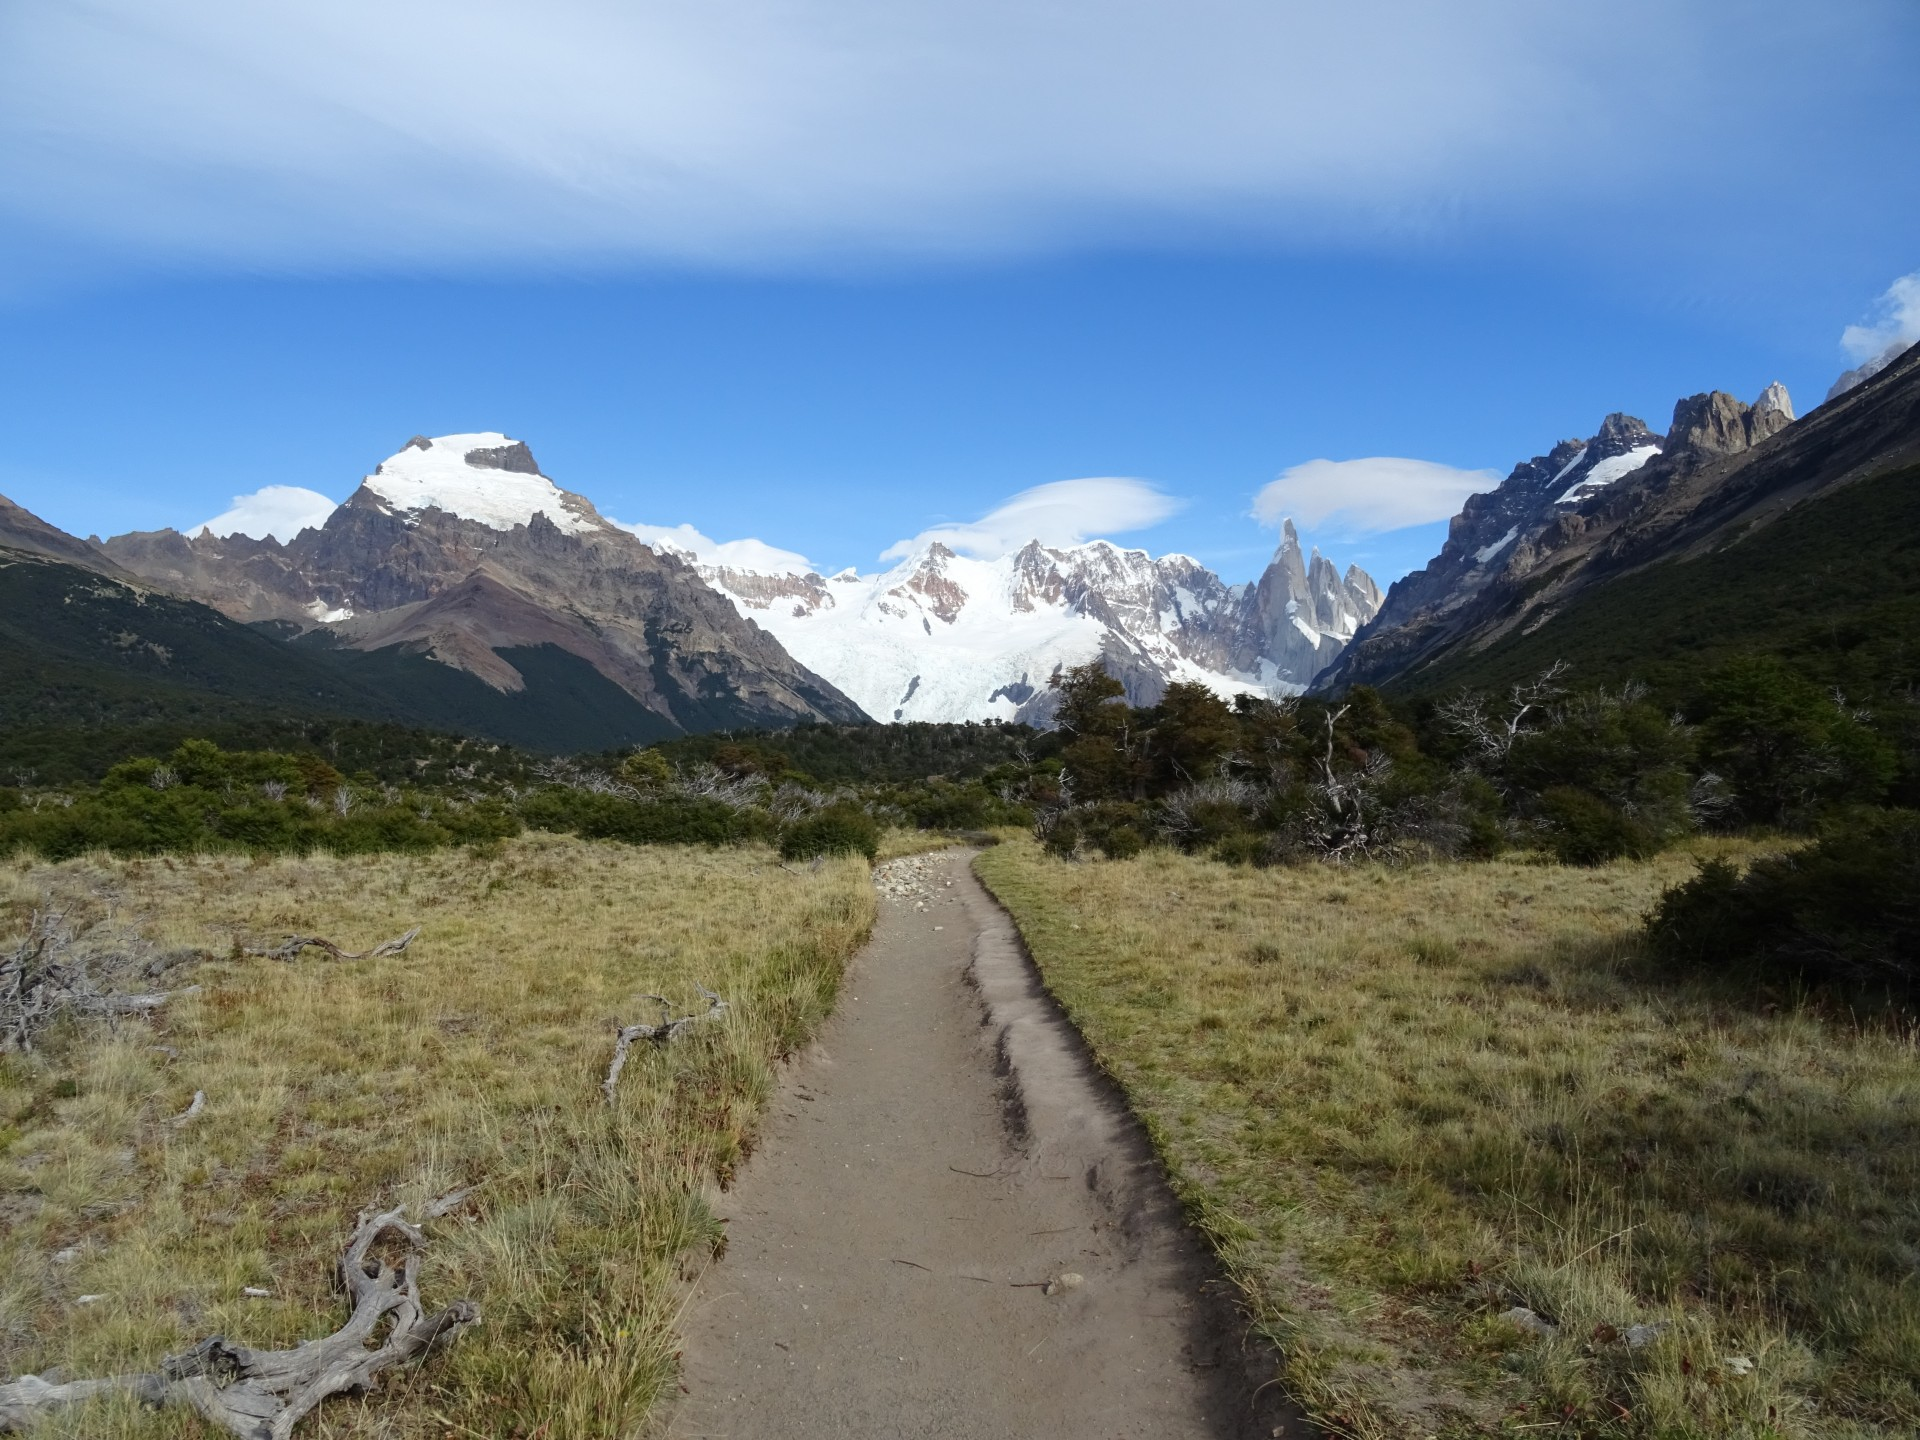 Walking to Laguna Torre. The unloved Ice Cream Mountain on the left. I feel sorry for him.